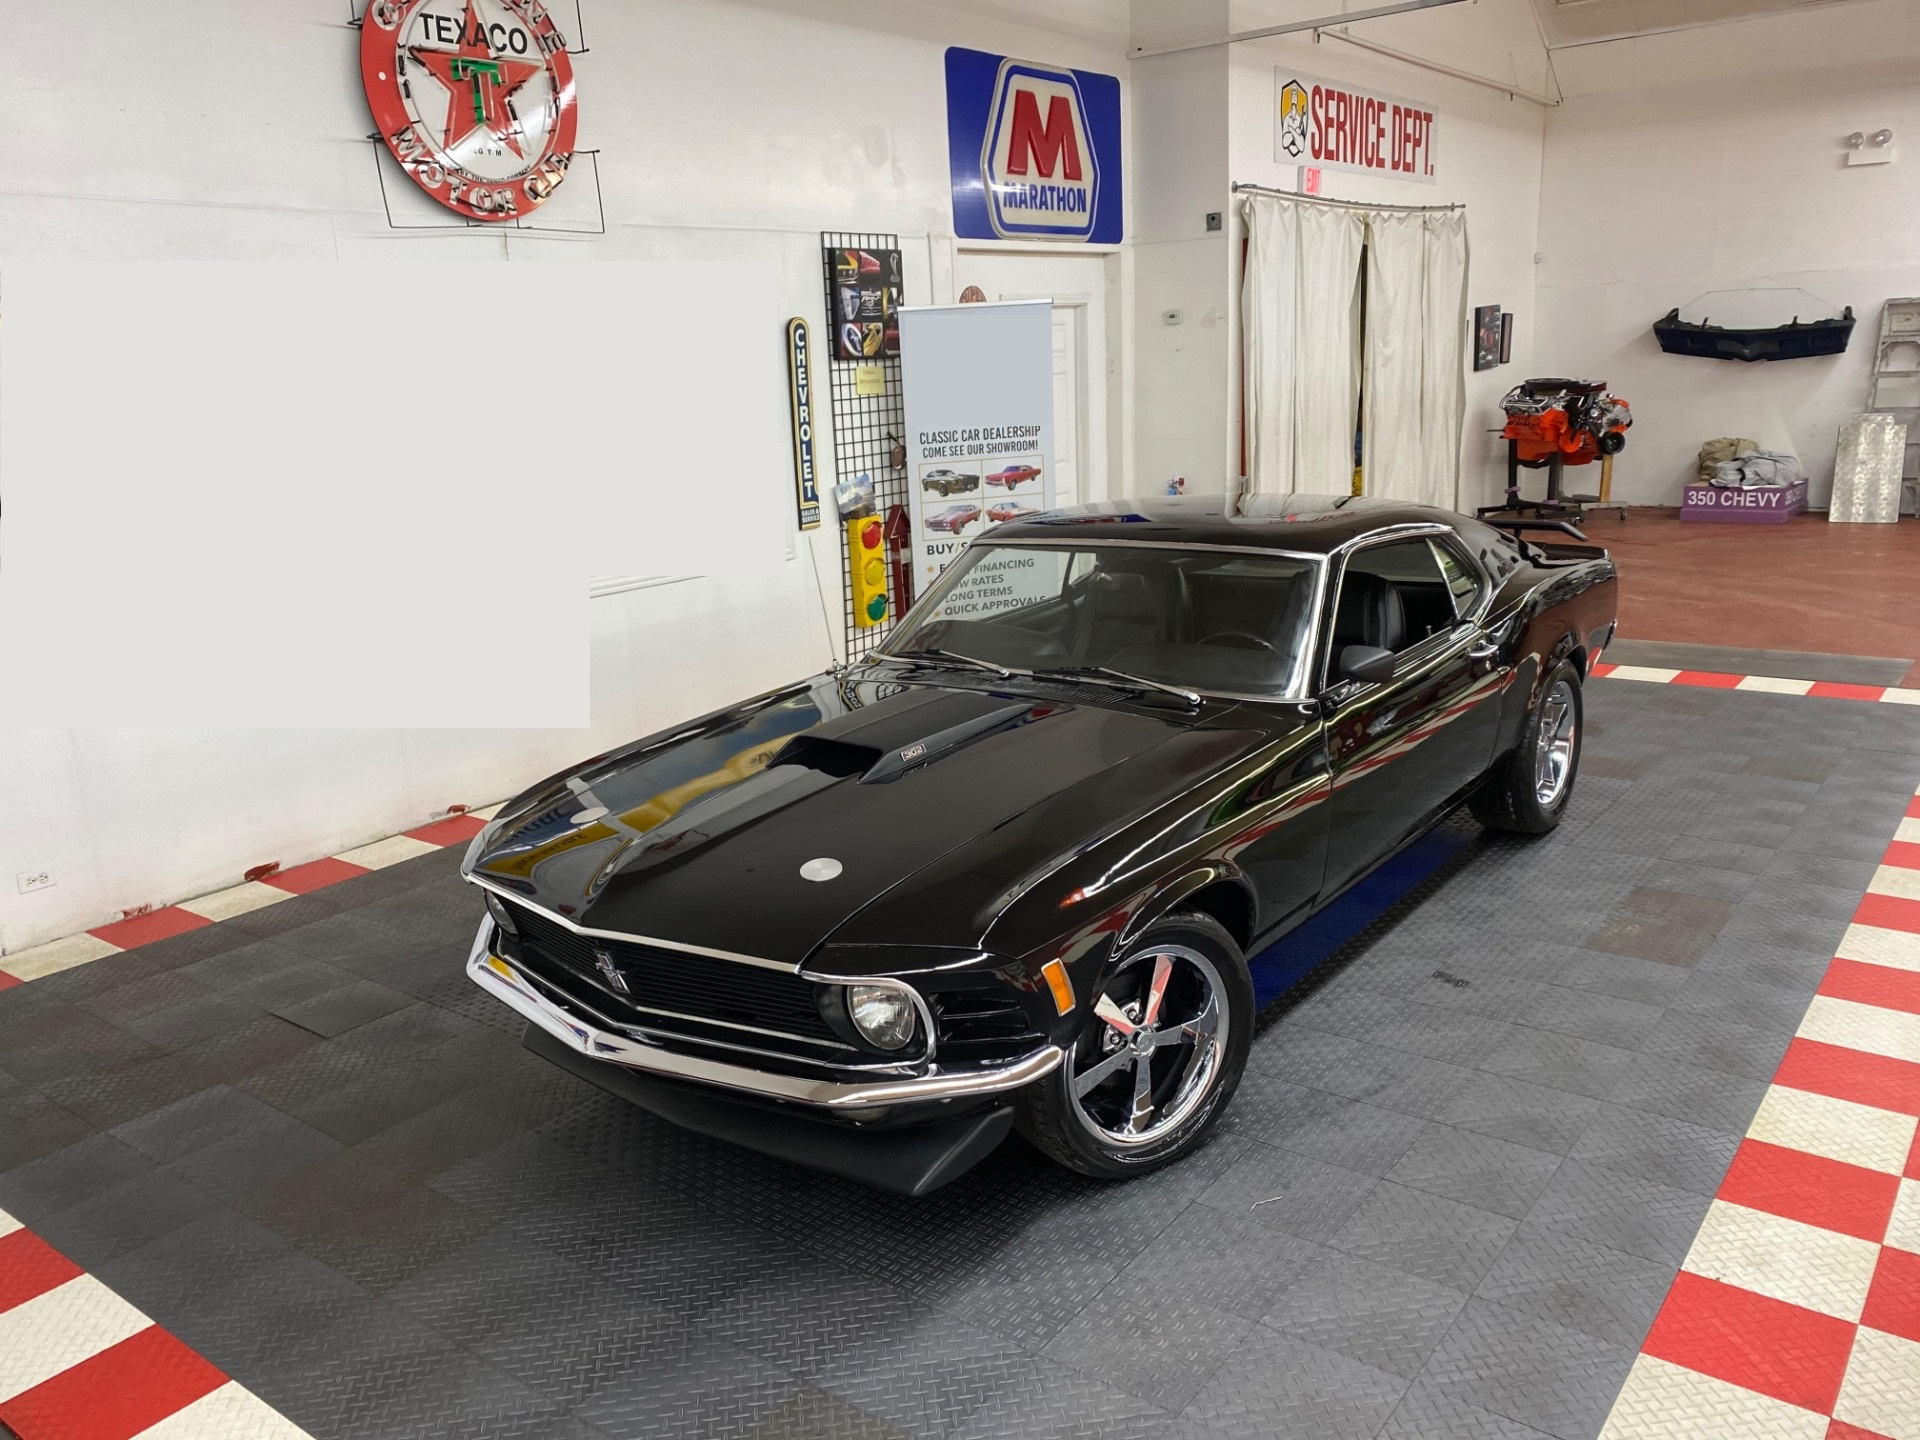 Mustang Mach 1 302ci V8 Automatique 197036 985 €